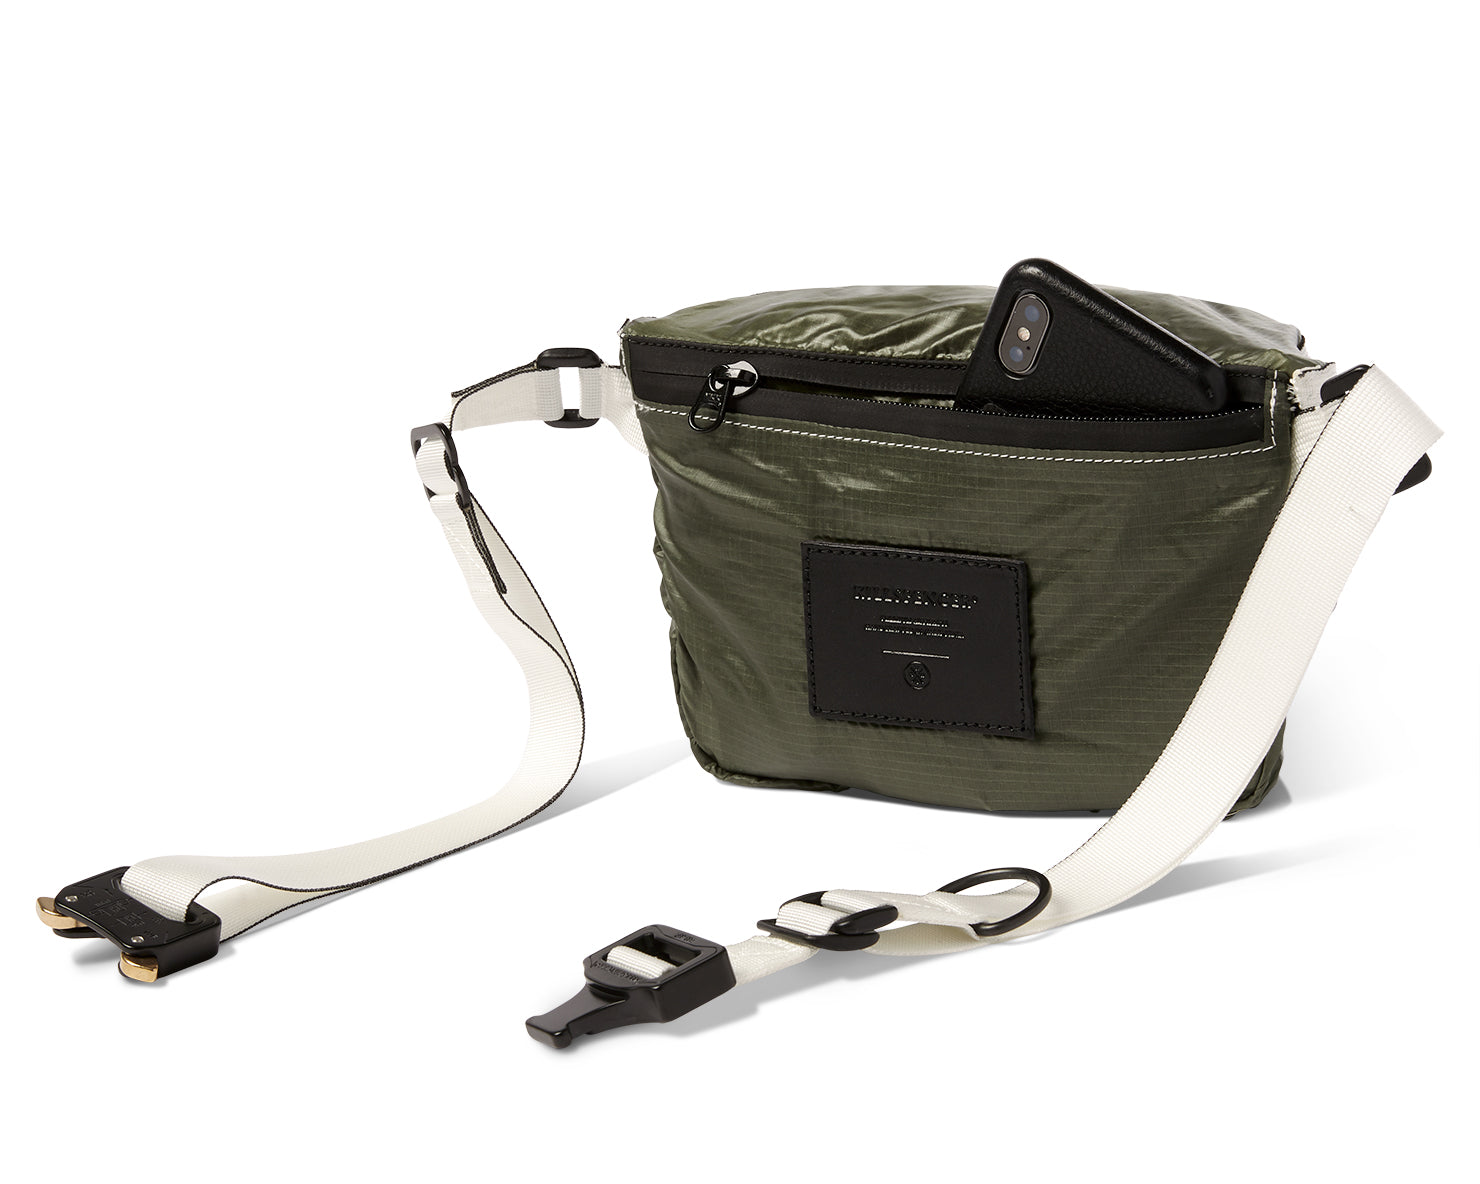 PARACHUTE BELT BAG 2.0 | KILLSPENCER® - Olive Drab Parachute